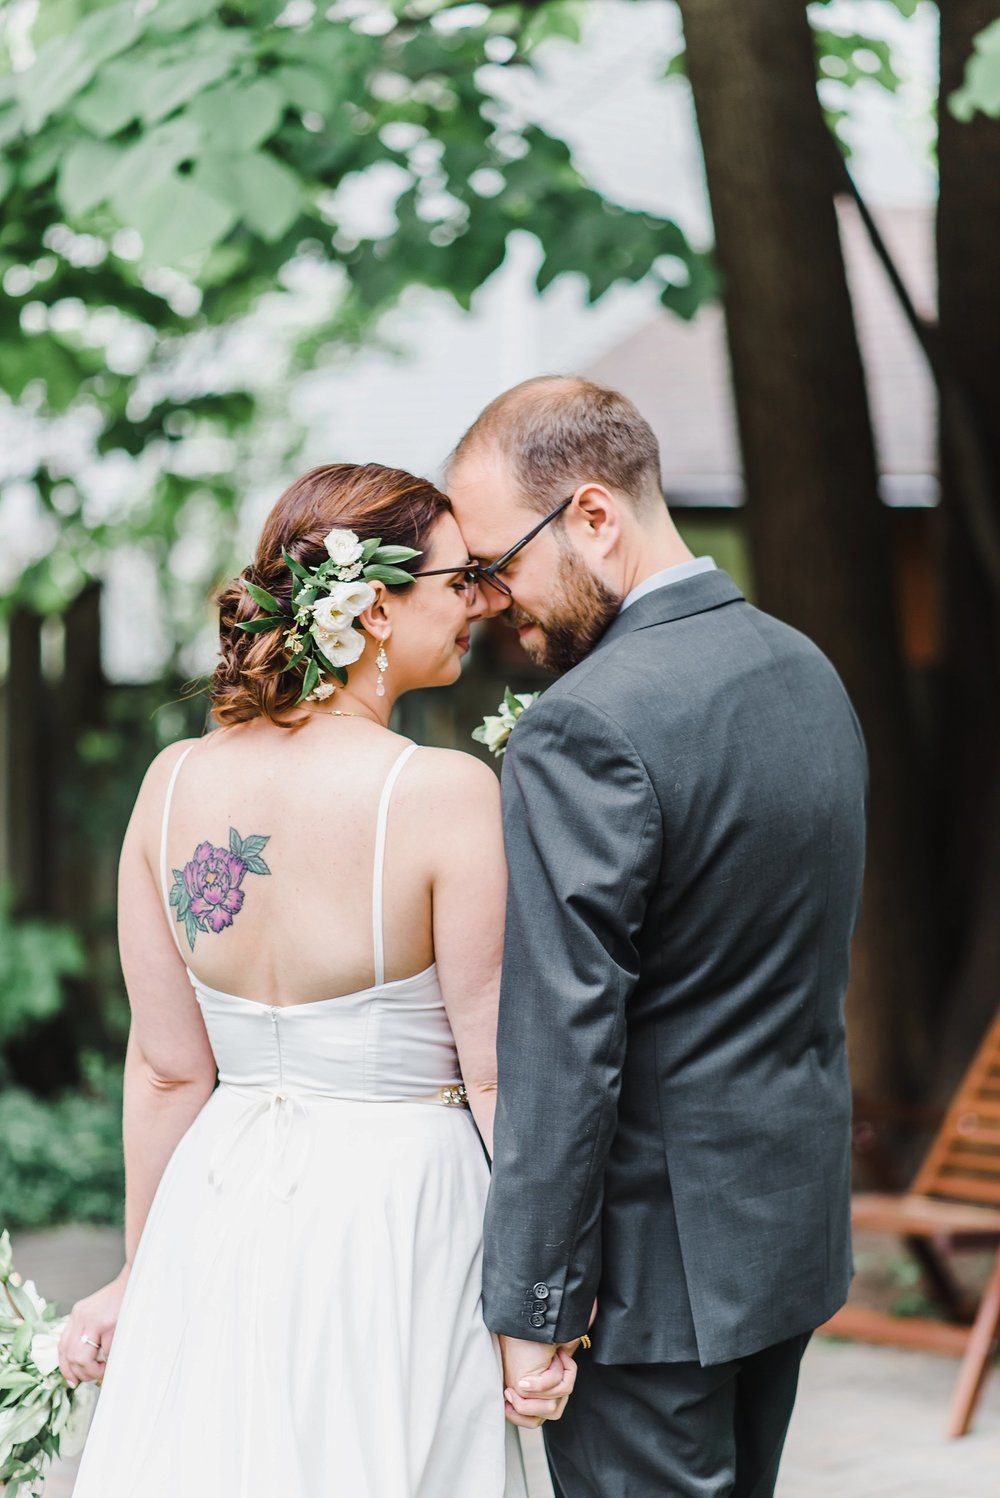 light airy indie fine art ottawa wedding photographer | Ali and Batoul Photography_1703.jpg